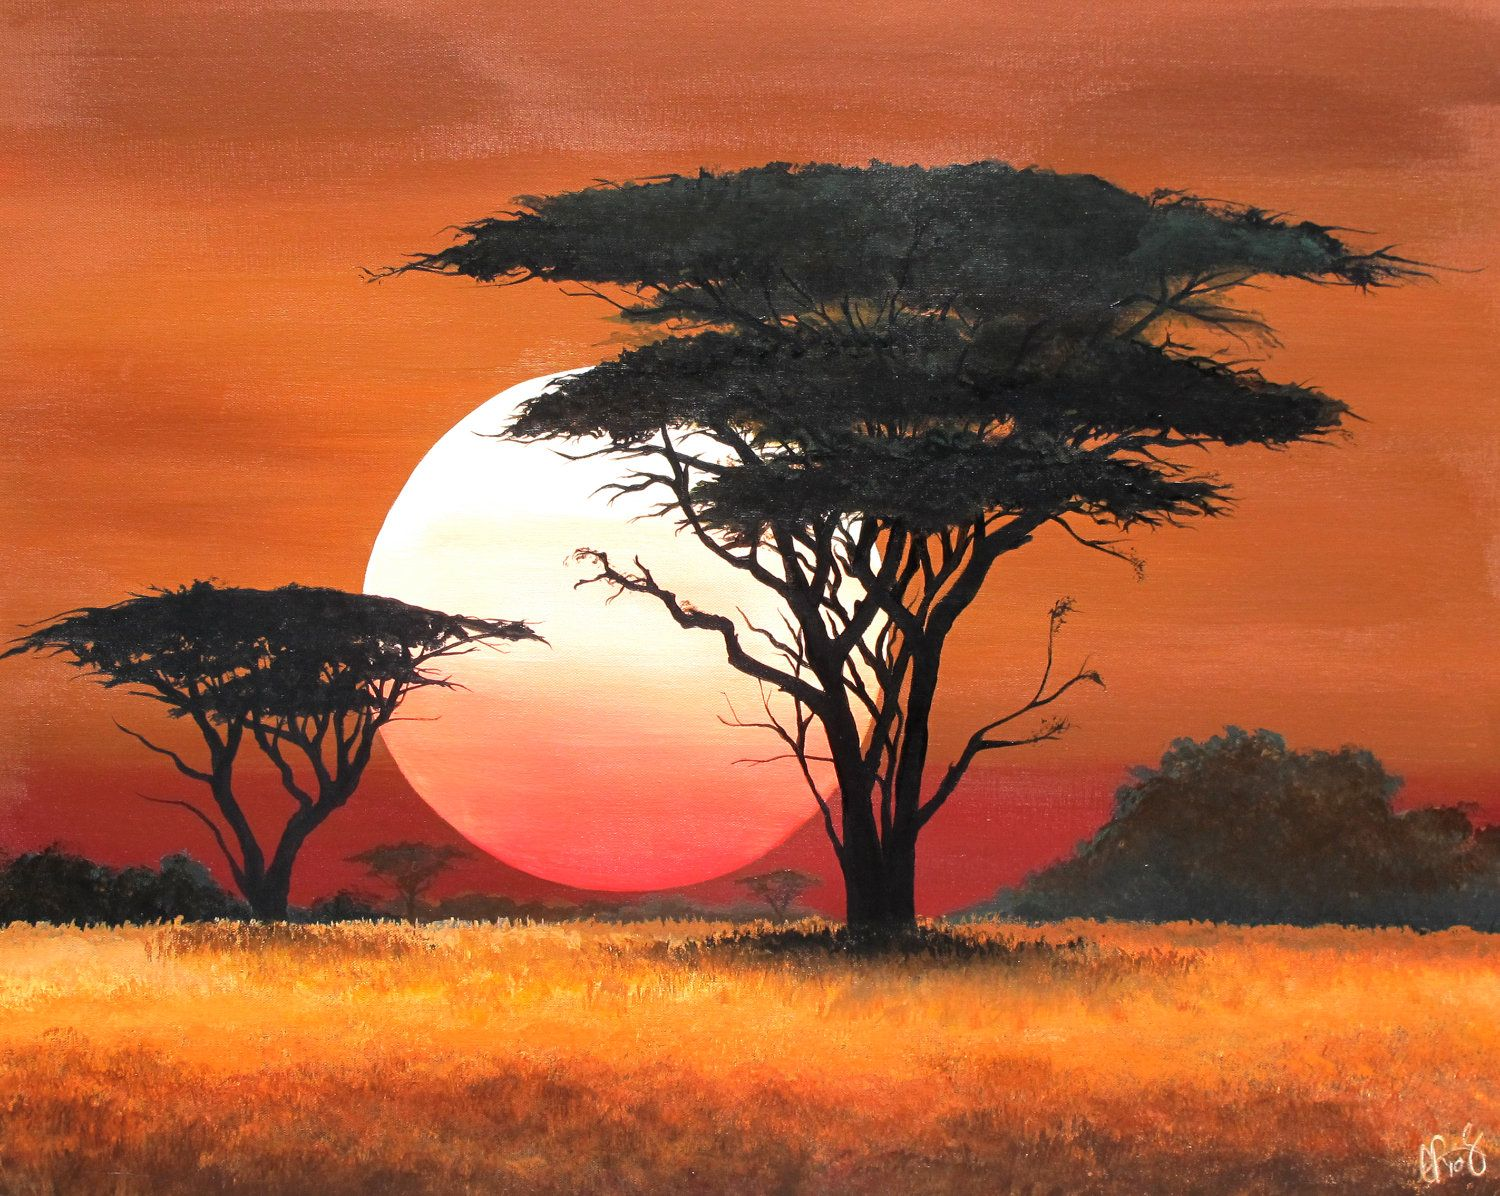 Sunset Scenery Painting For Kids - scenery